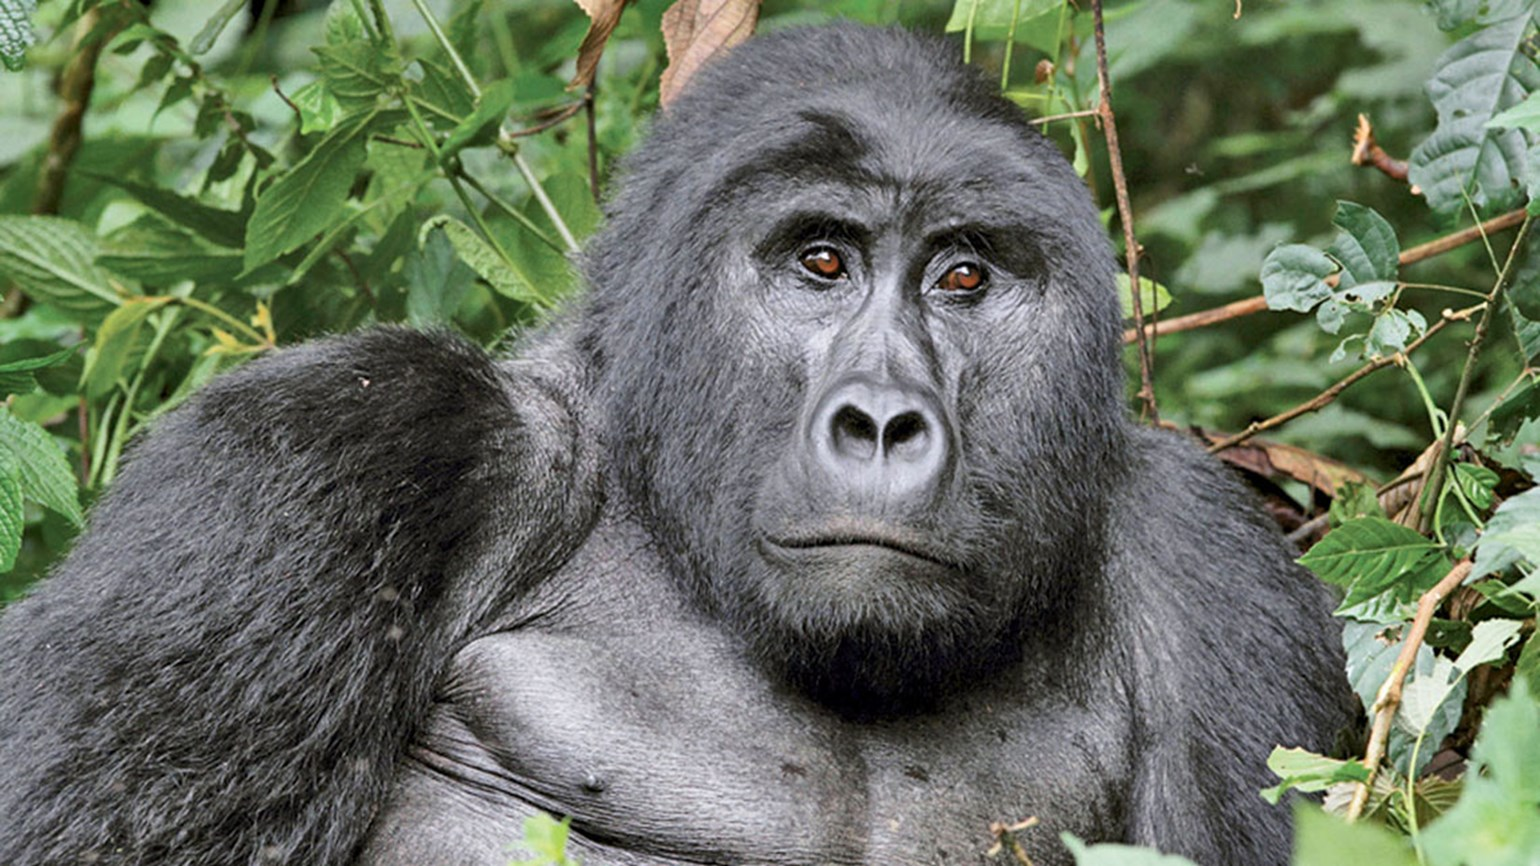 Volcanoes National Park in Rwanda expands gorilla habitat